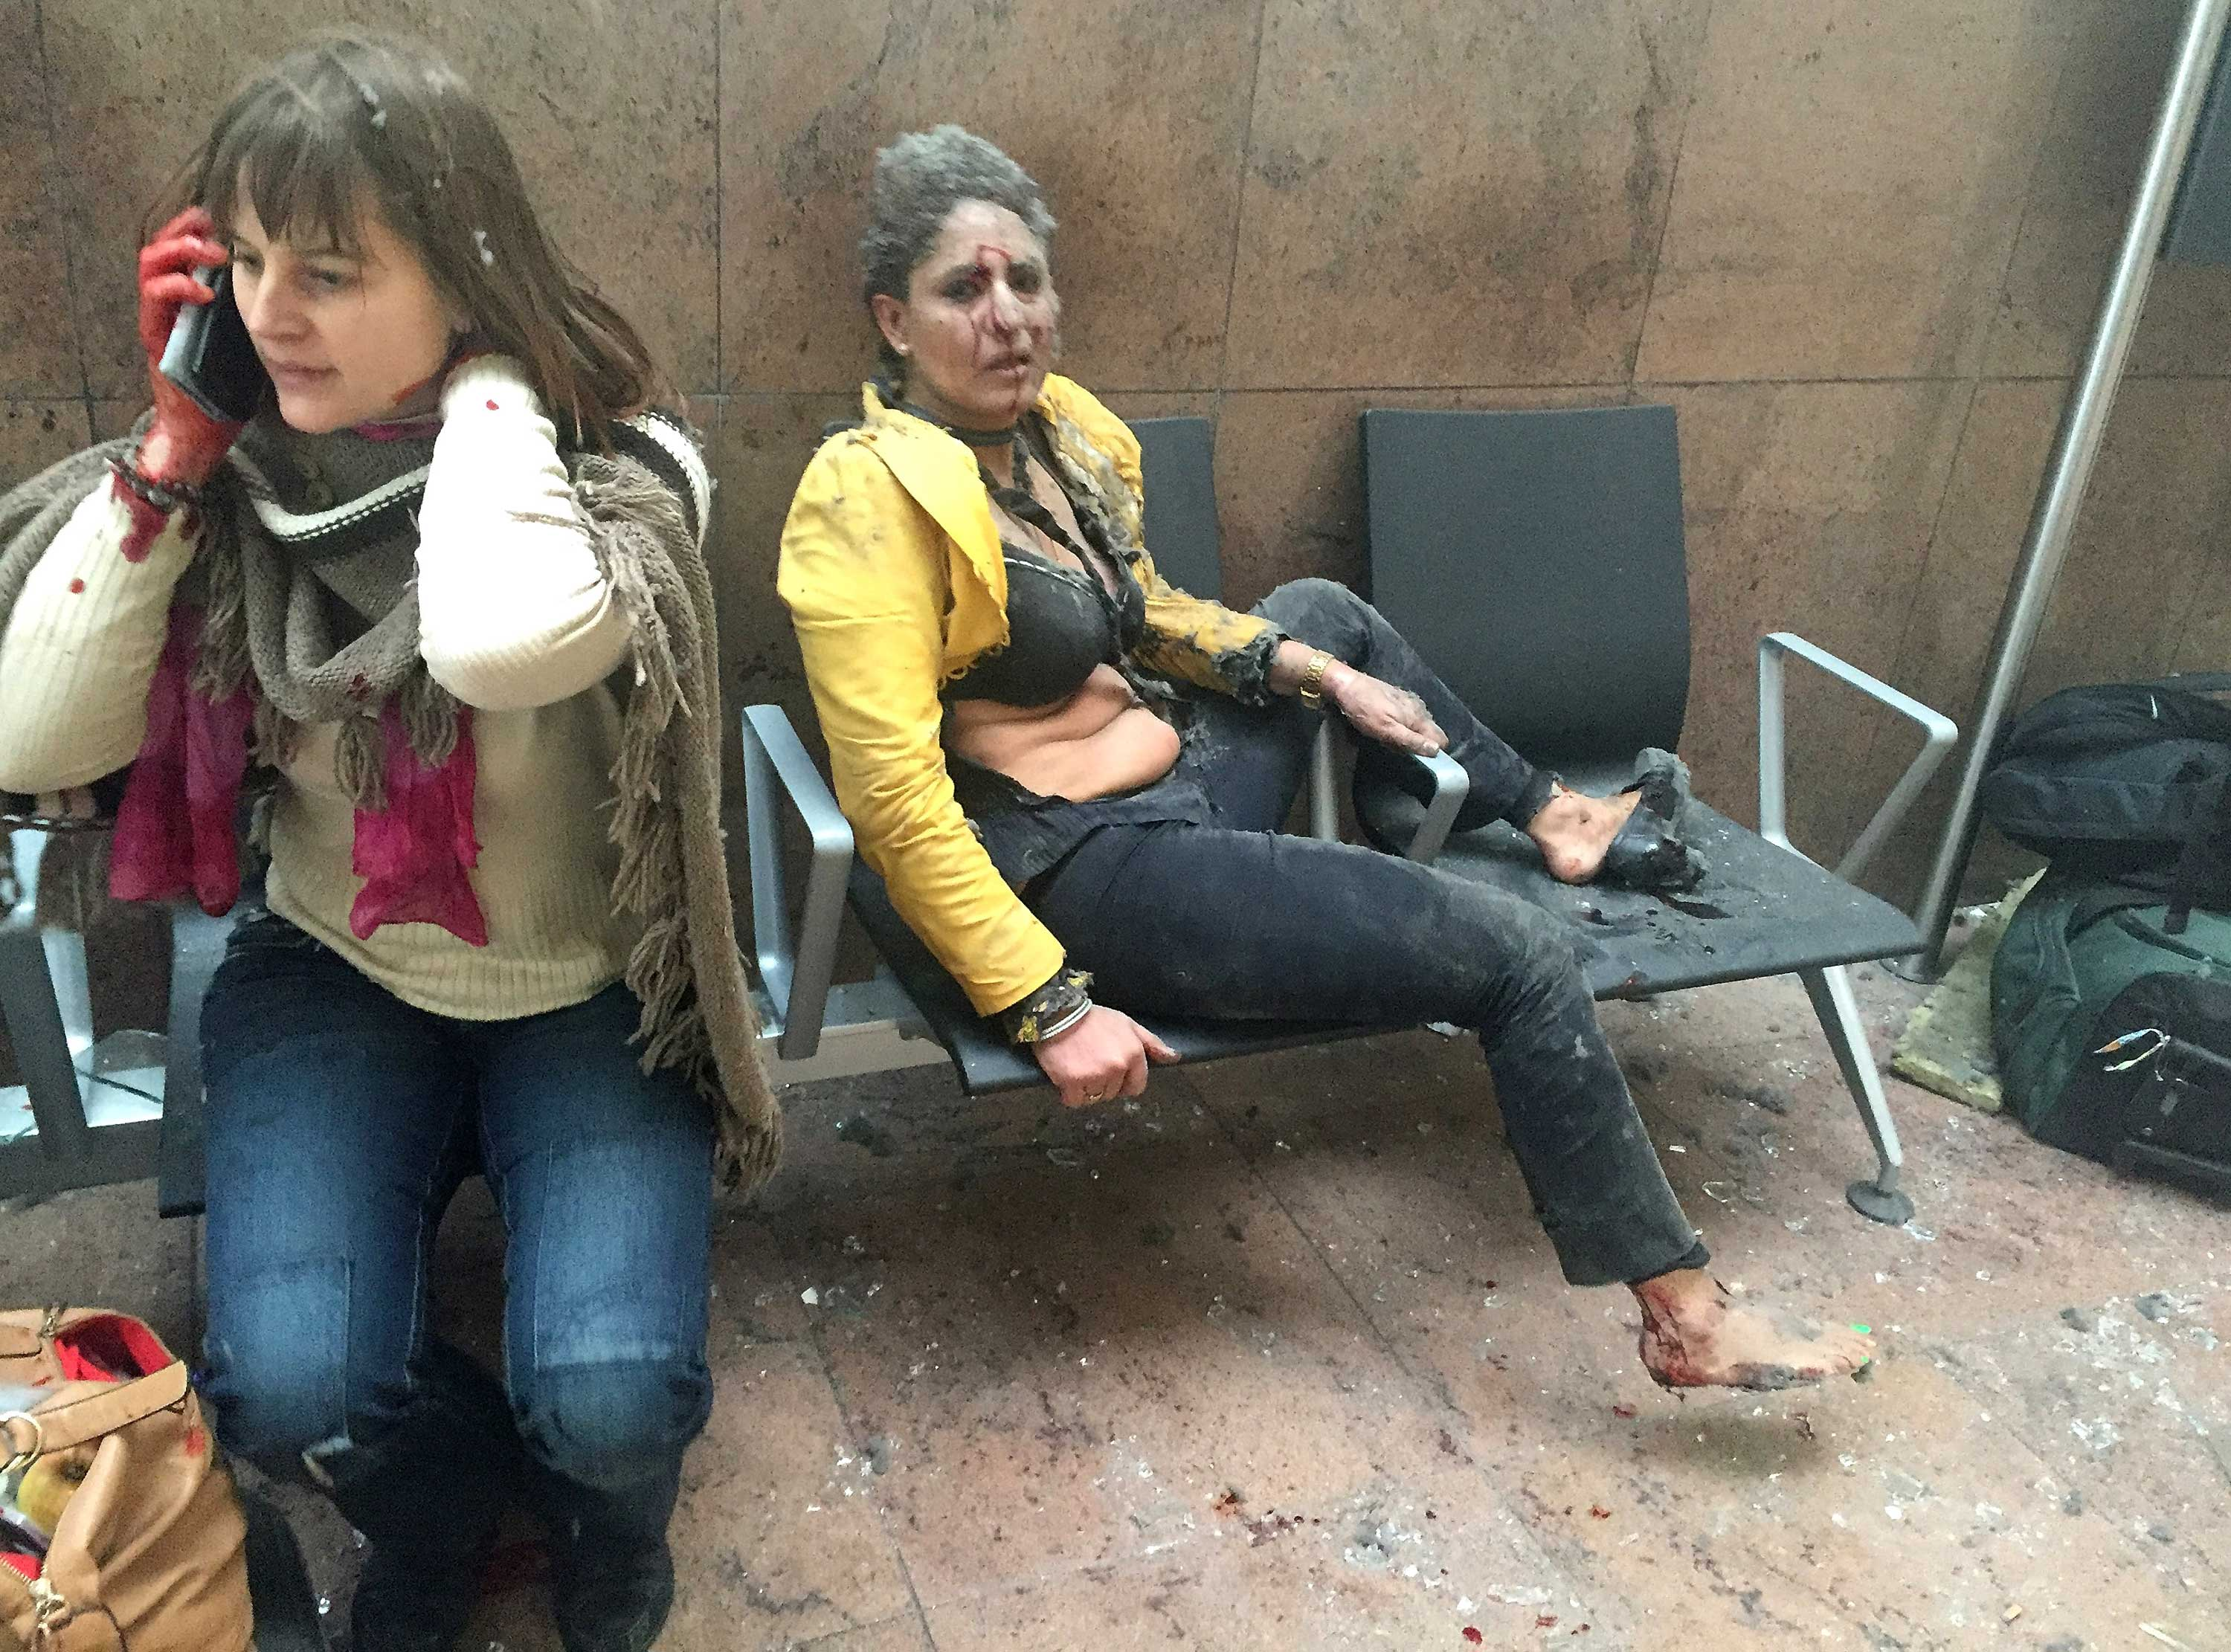 Flight attendant Nidhi Chaphekar (R) reacts in the moments following a suicide bombing at Brussels Zaventem airport on March 22, 2016 in Brussels, Belgium. Georgian journalist Ketevan Kardava, special correspondent for the Georgian Public Broadcaster, was traveling to Geneva when the attack took place; she was knocked to the floor and began to take photographs in the moments that followed.